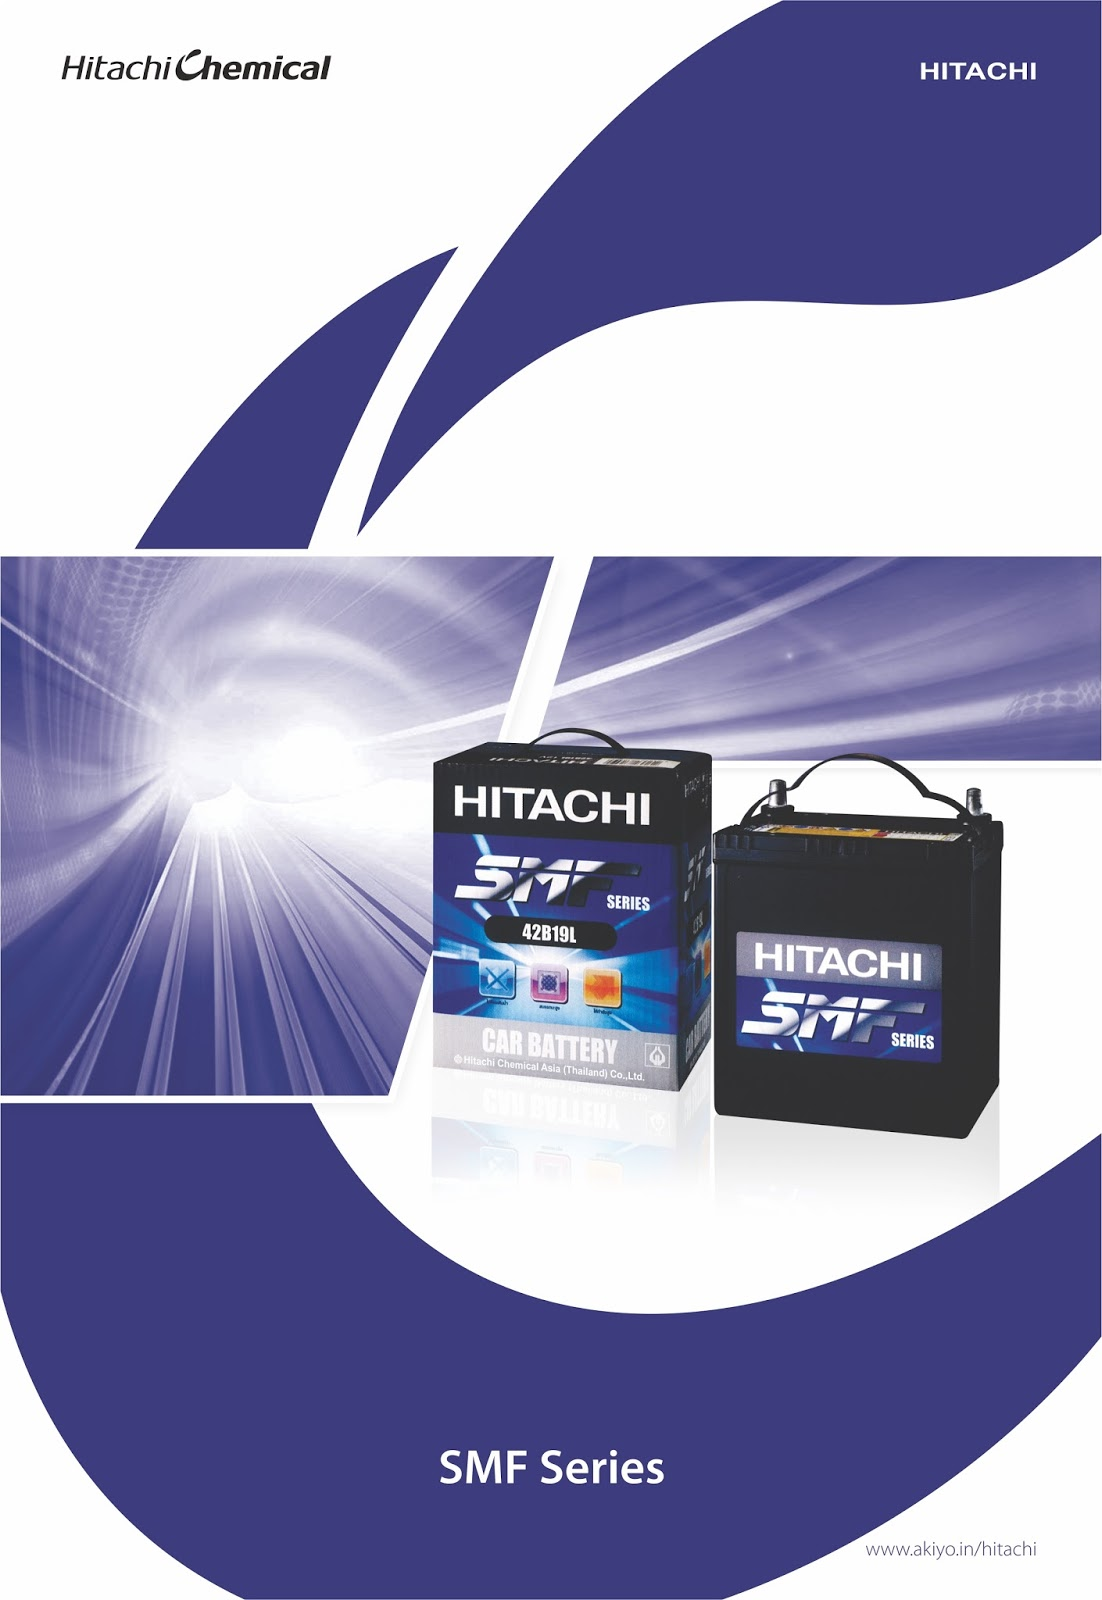 Hitachi Chemical Group Overseas Hitachi Chemical - oukas info